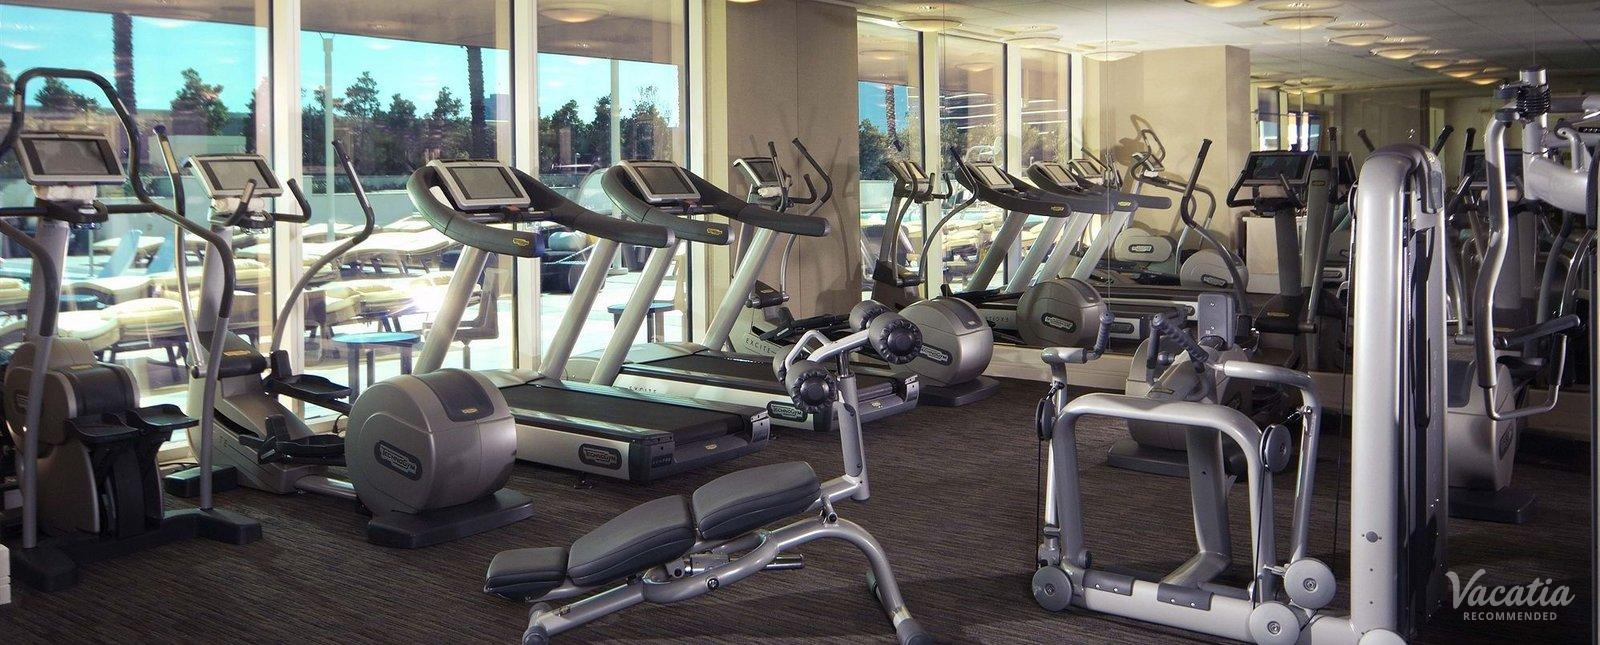 Trump International Hotel Las Vegas Fitness Center